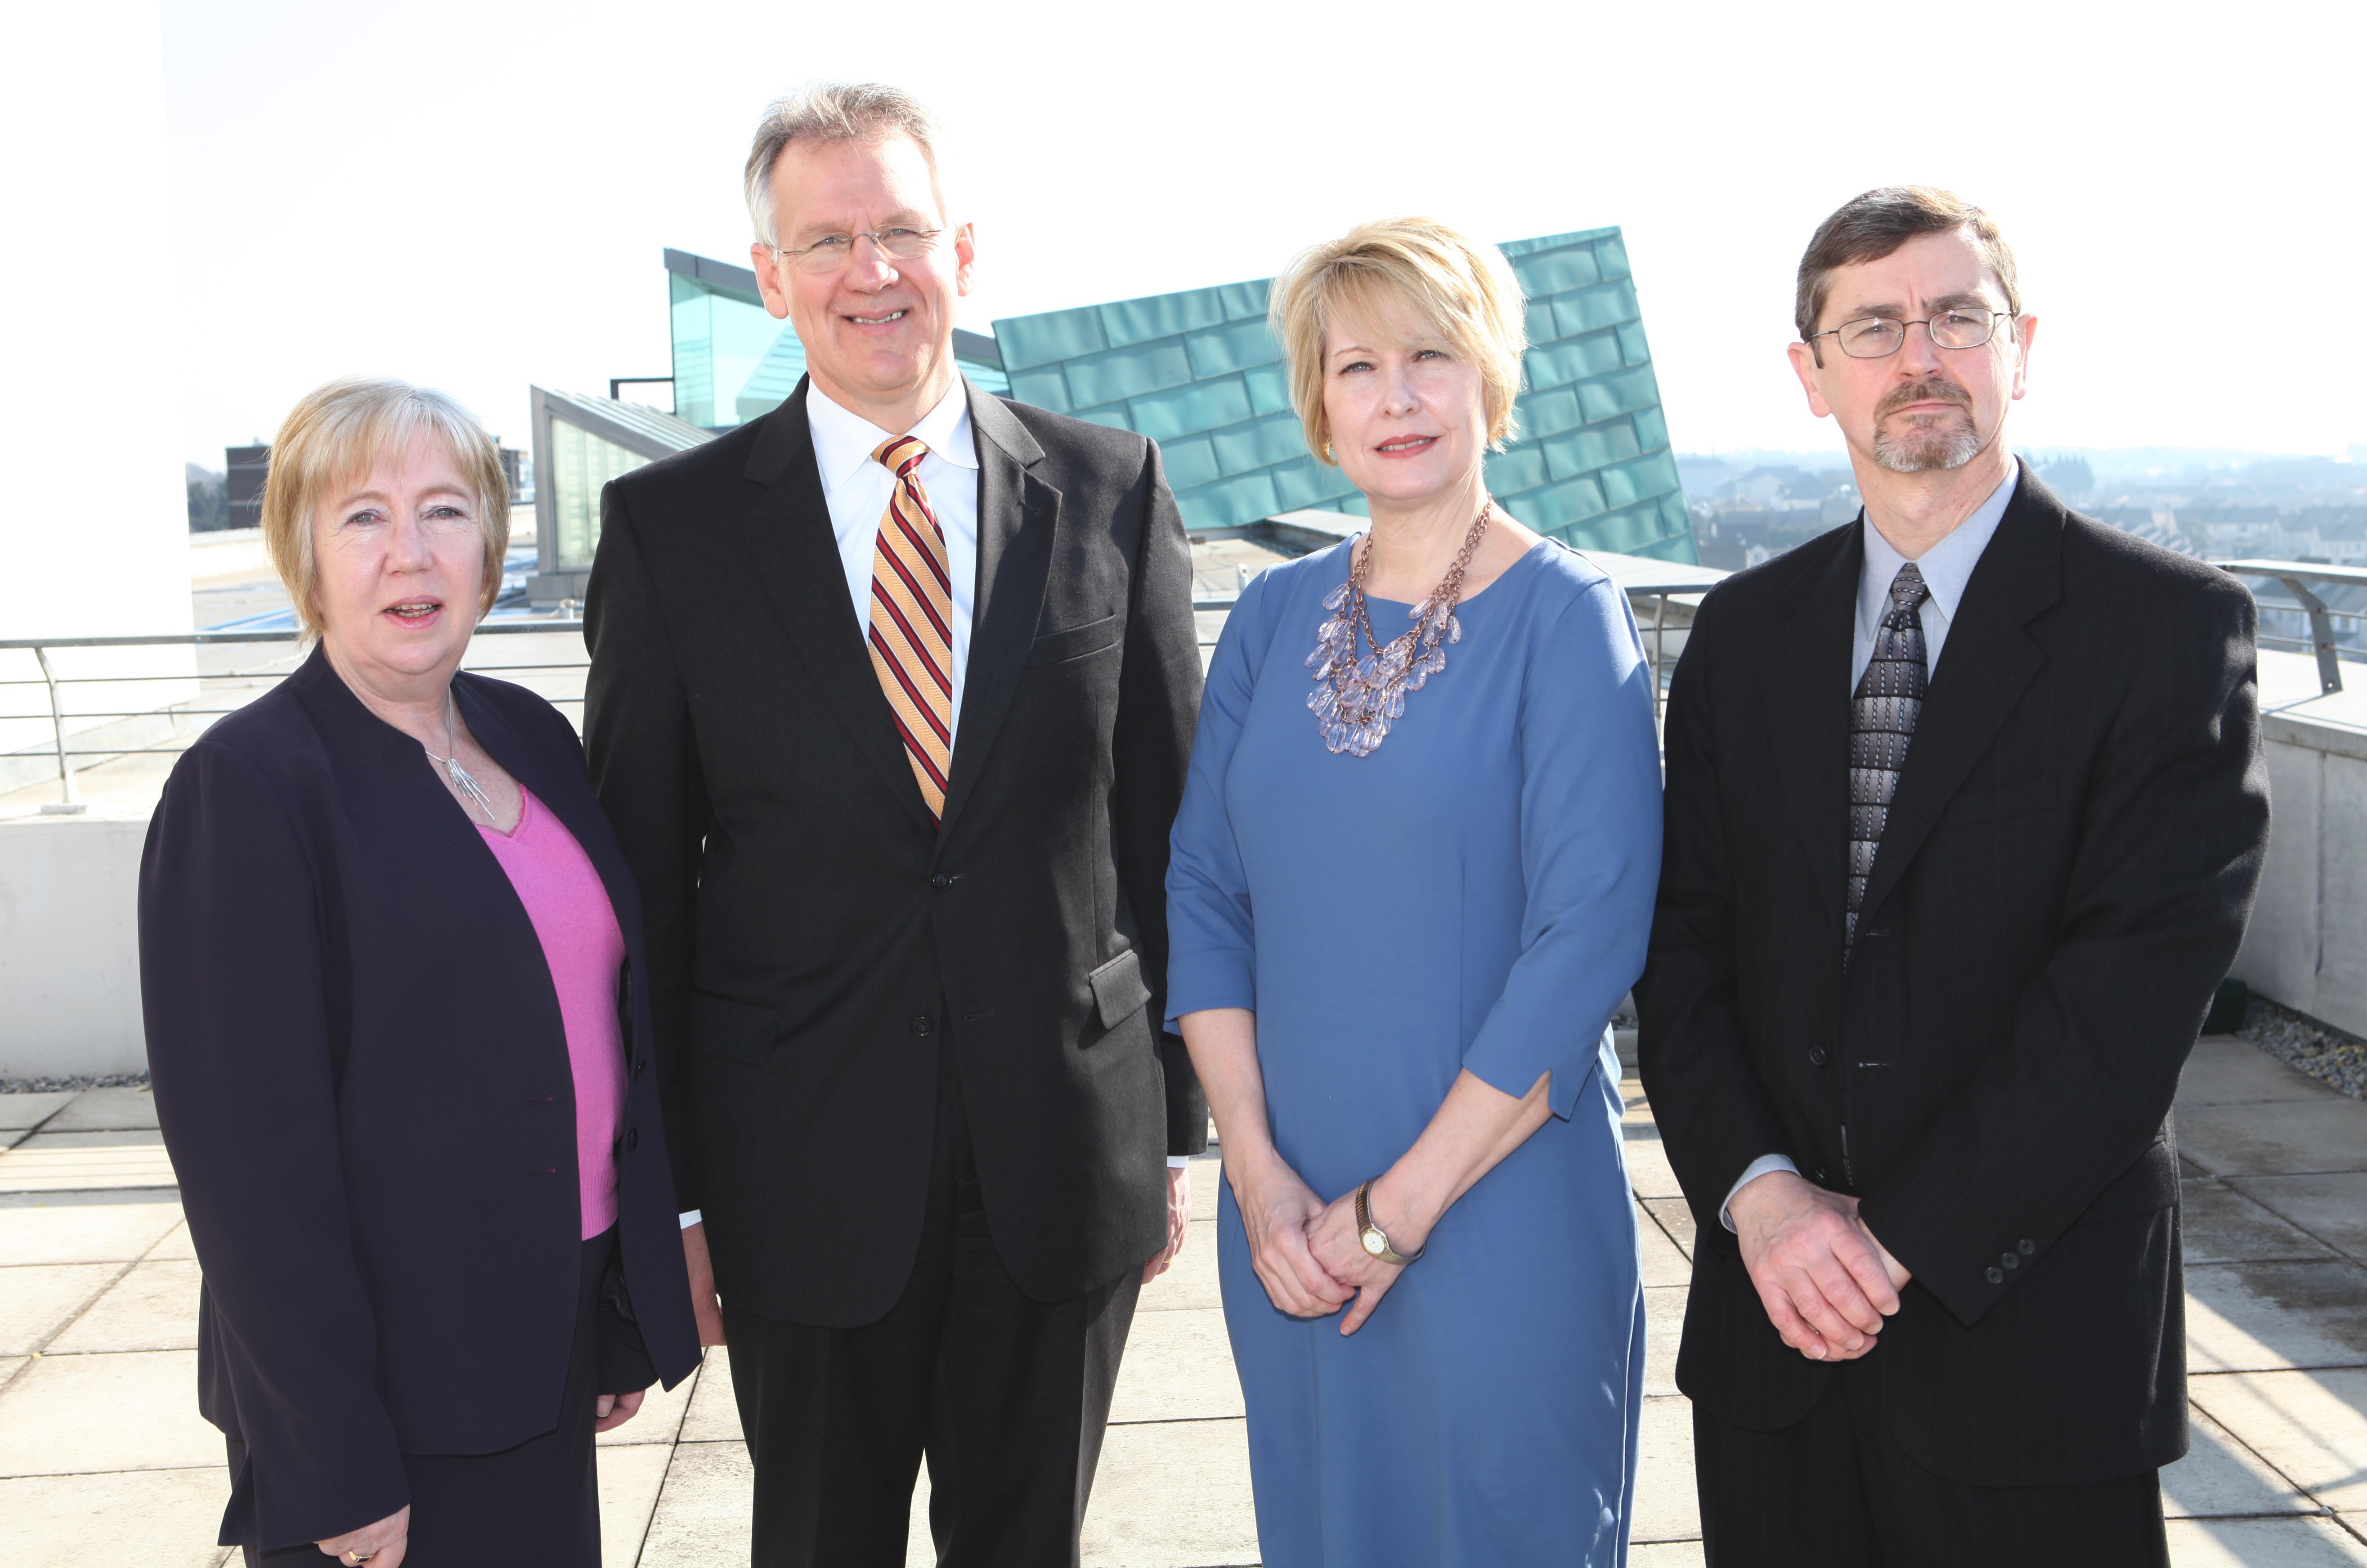 Pictured left to right are Marion Coy, president of the Galway–Mayo Institute of Technology; Paul Winistorfer, dean of the Virginia Tech College of Natural Resources; Betty Adams, executive director of the Southern Virginia Higher Education Center; Robert Bush, professor in Virginia Tech's Department of Wood Science and Forest Products.